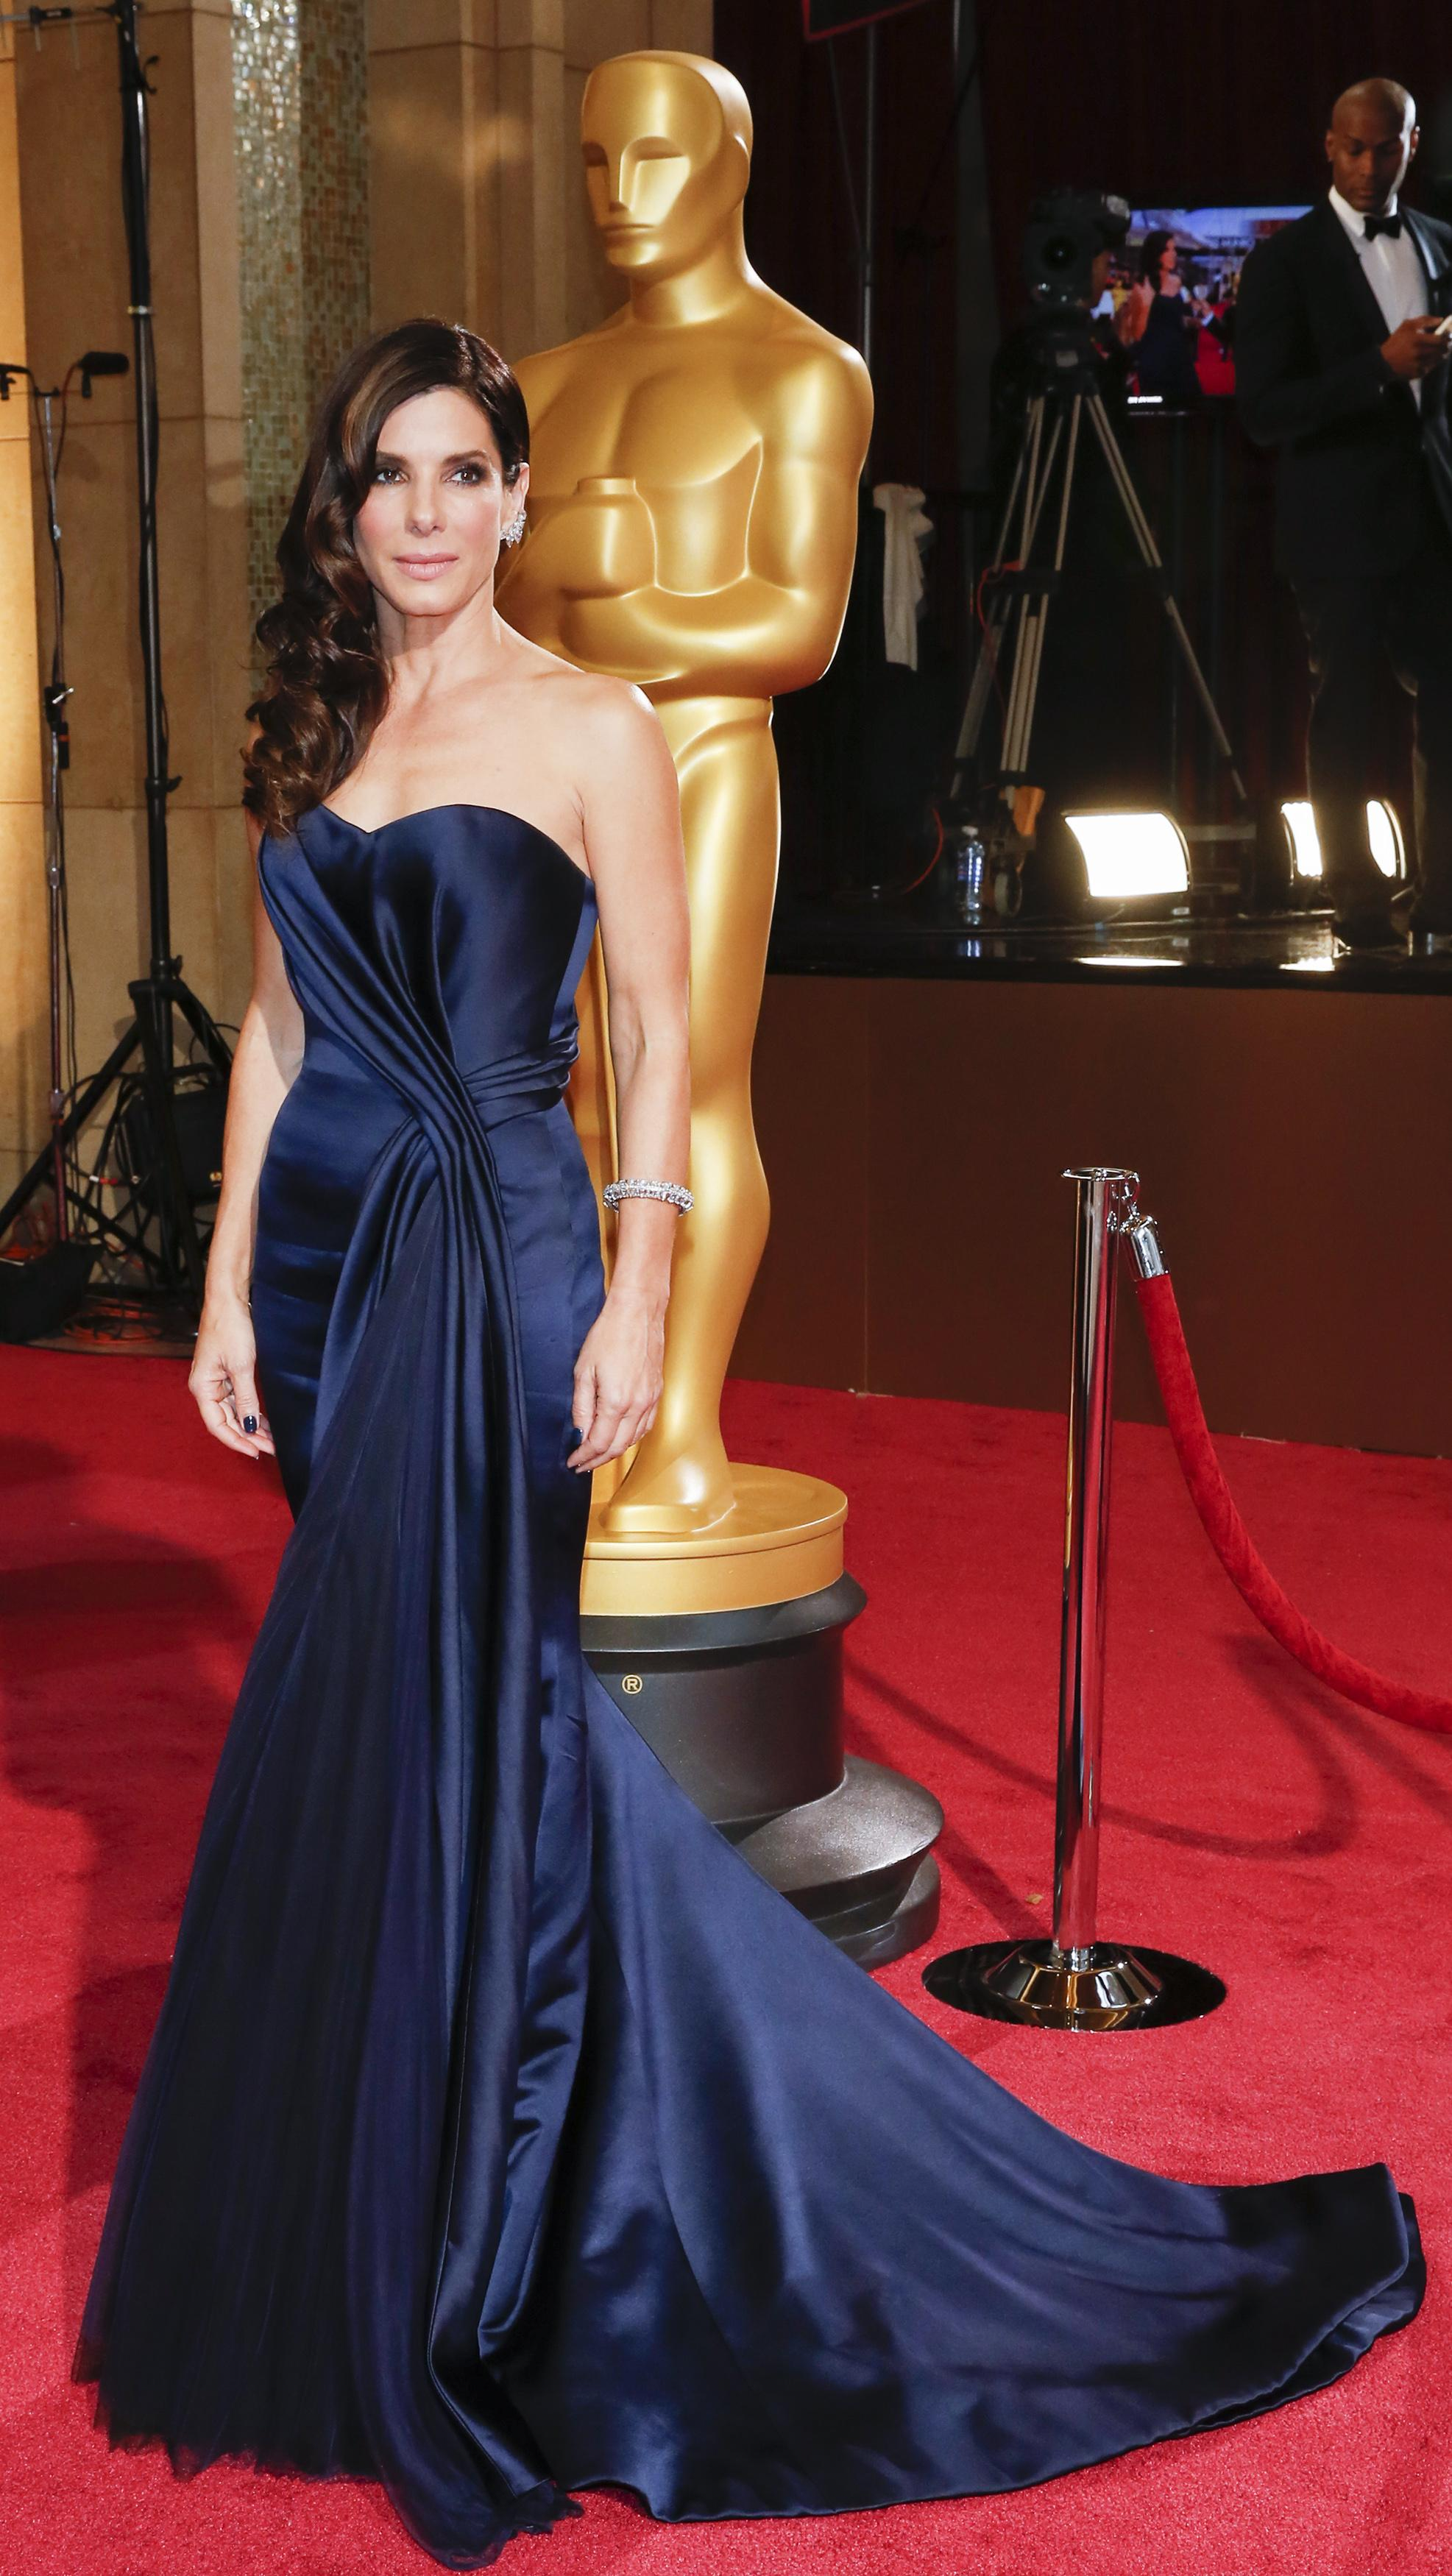 oscars 2014 red carpet recap of all the fashion during